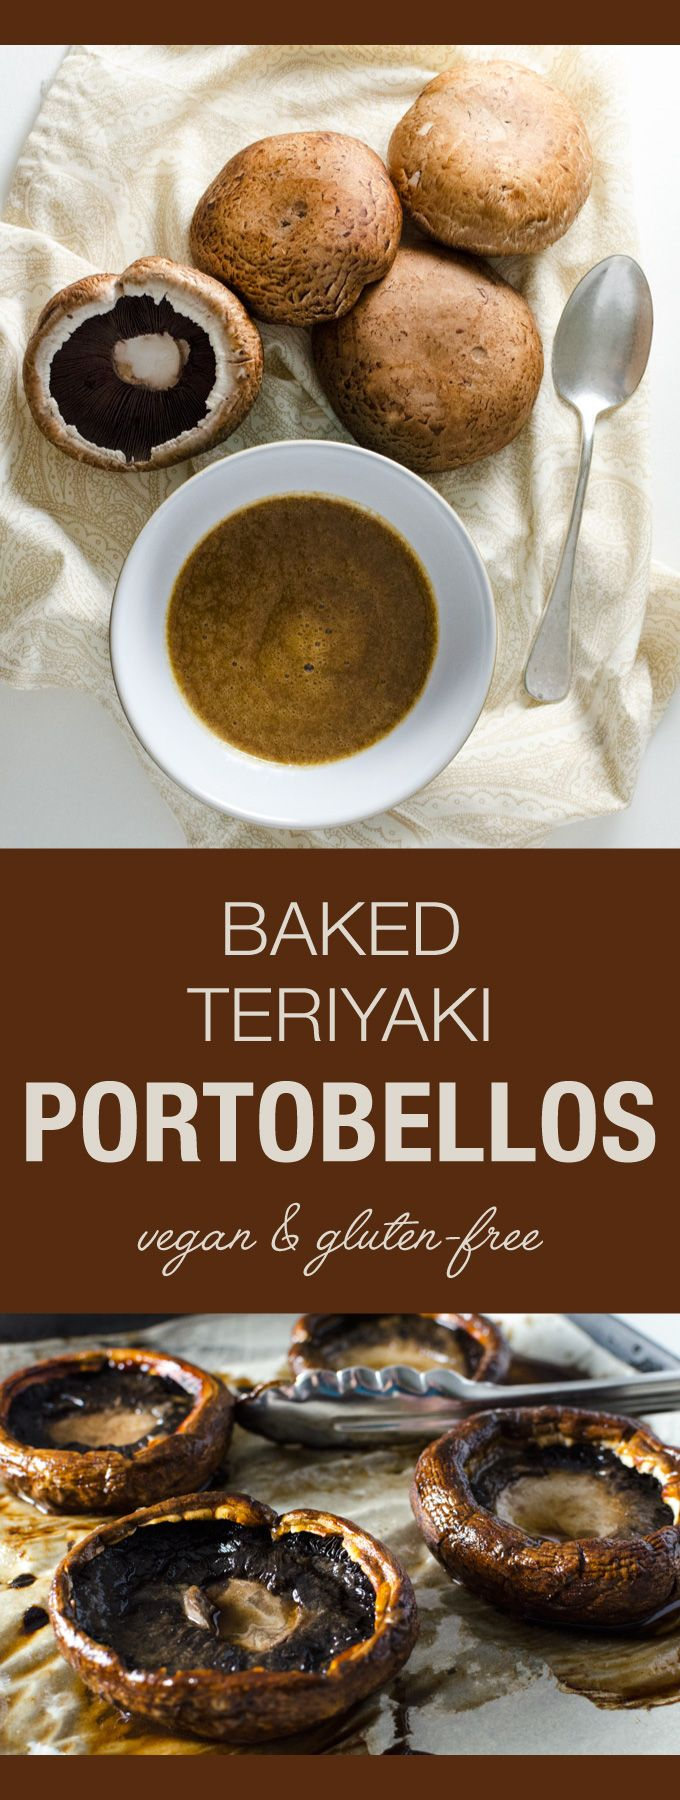 Baked Teriyaki Portobello Mushrooms